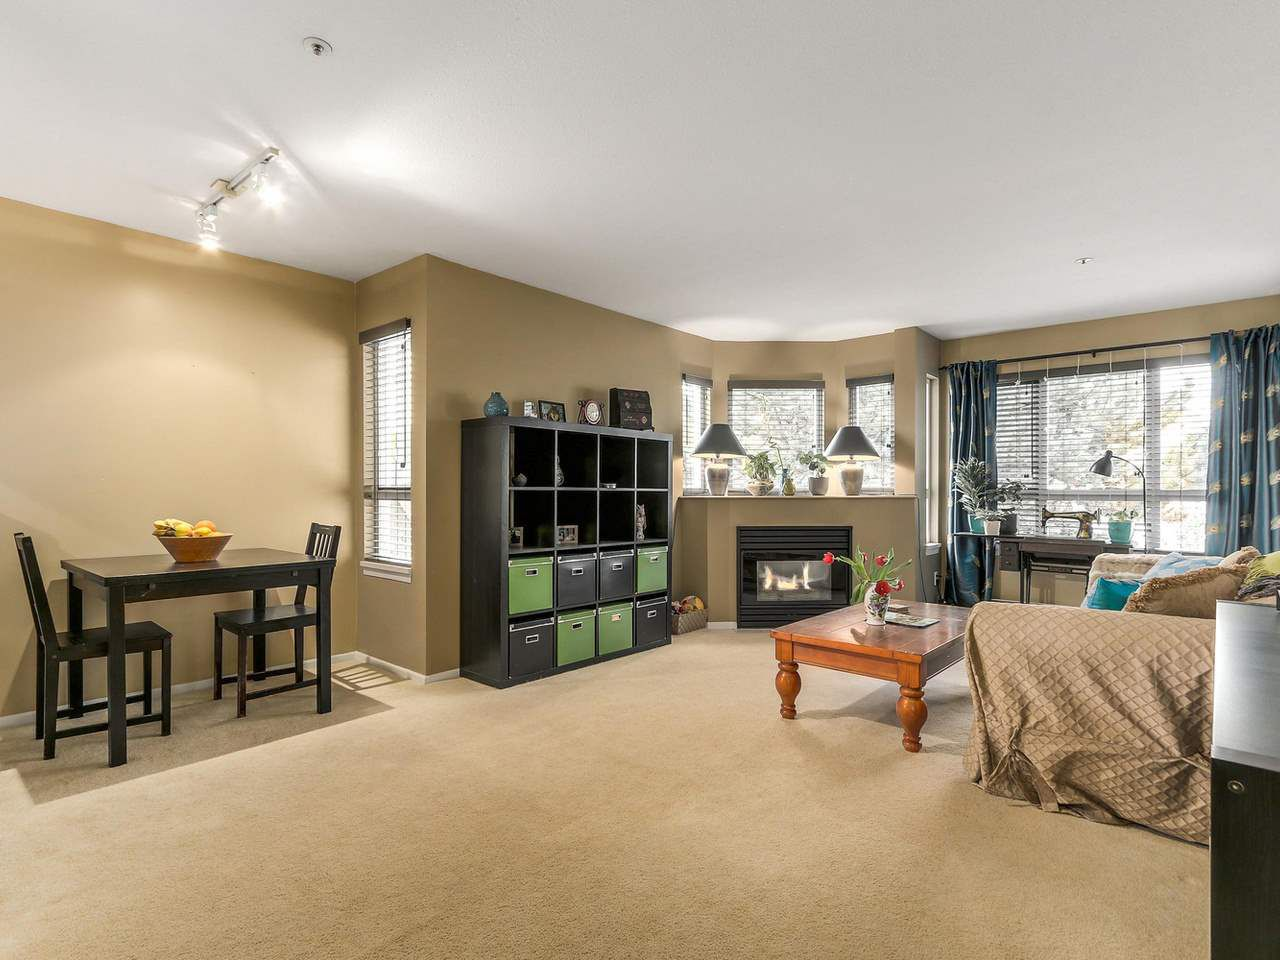 "Photo 2: Photos: 301 1623 E 2ND Avenue in Vancouver: Grandview VE Condo for sale in ""GRANDVIEW MANOR"" (Vancouver East)  : MLS®# R2122830"